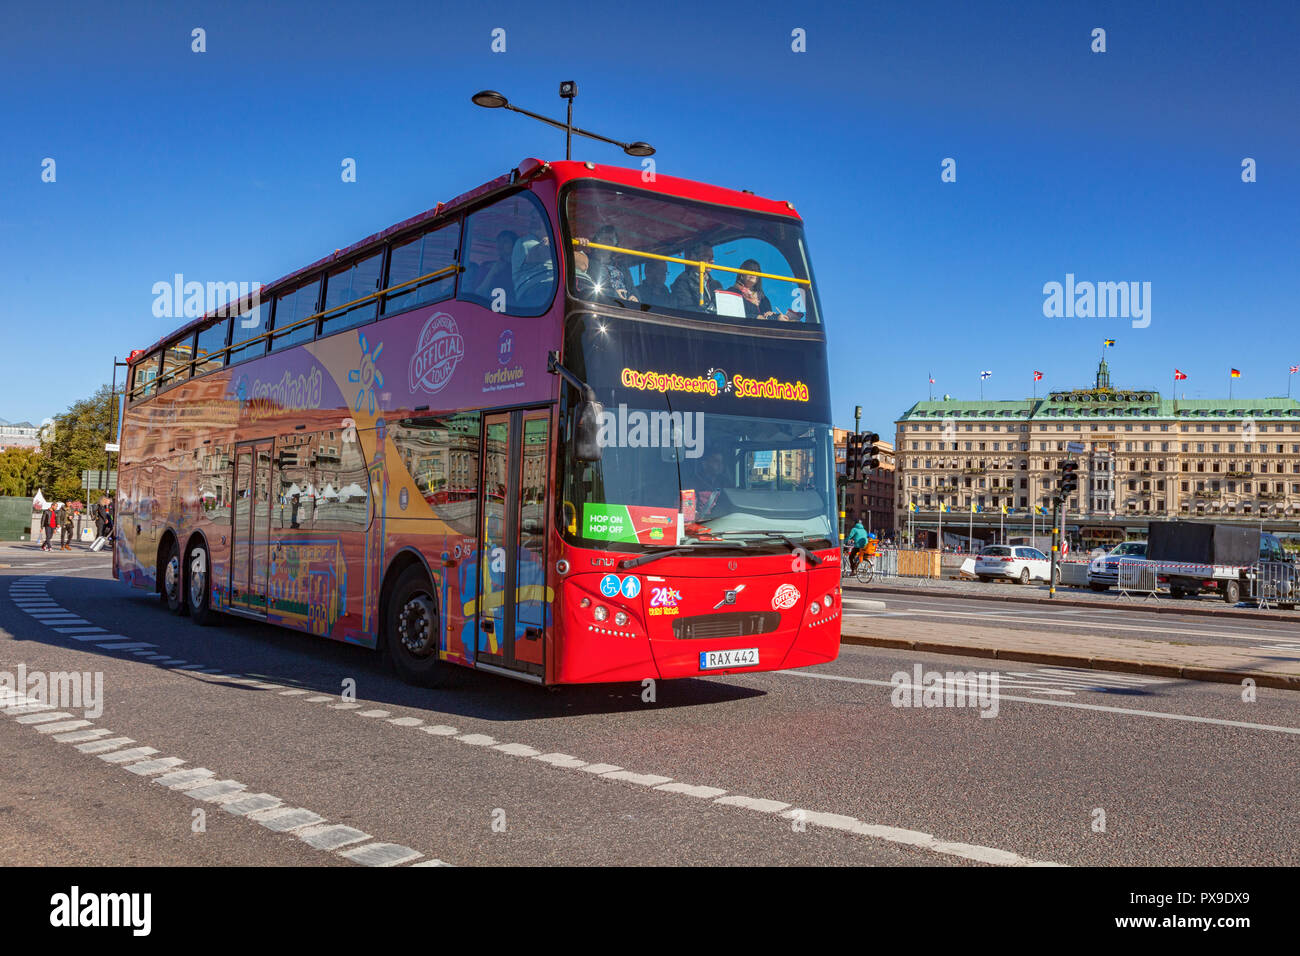 16 September 2018: Stockholm, Sweden - Red double decker tour bus in central city, with clear blue sky. - Stock Image